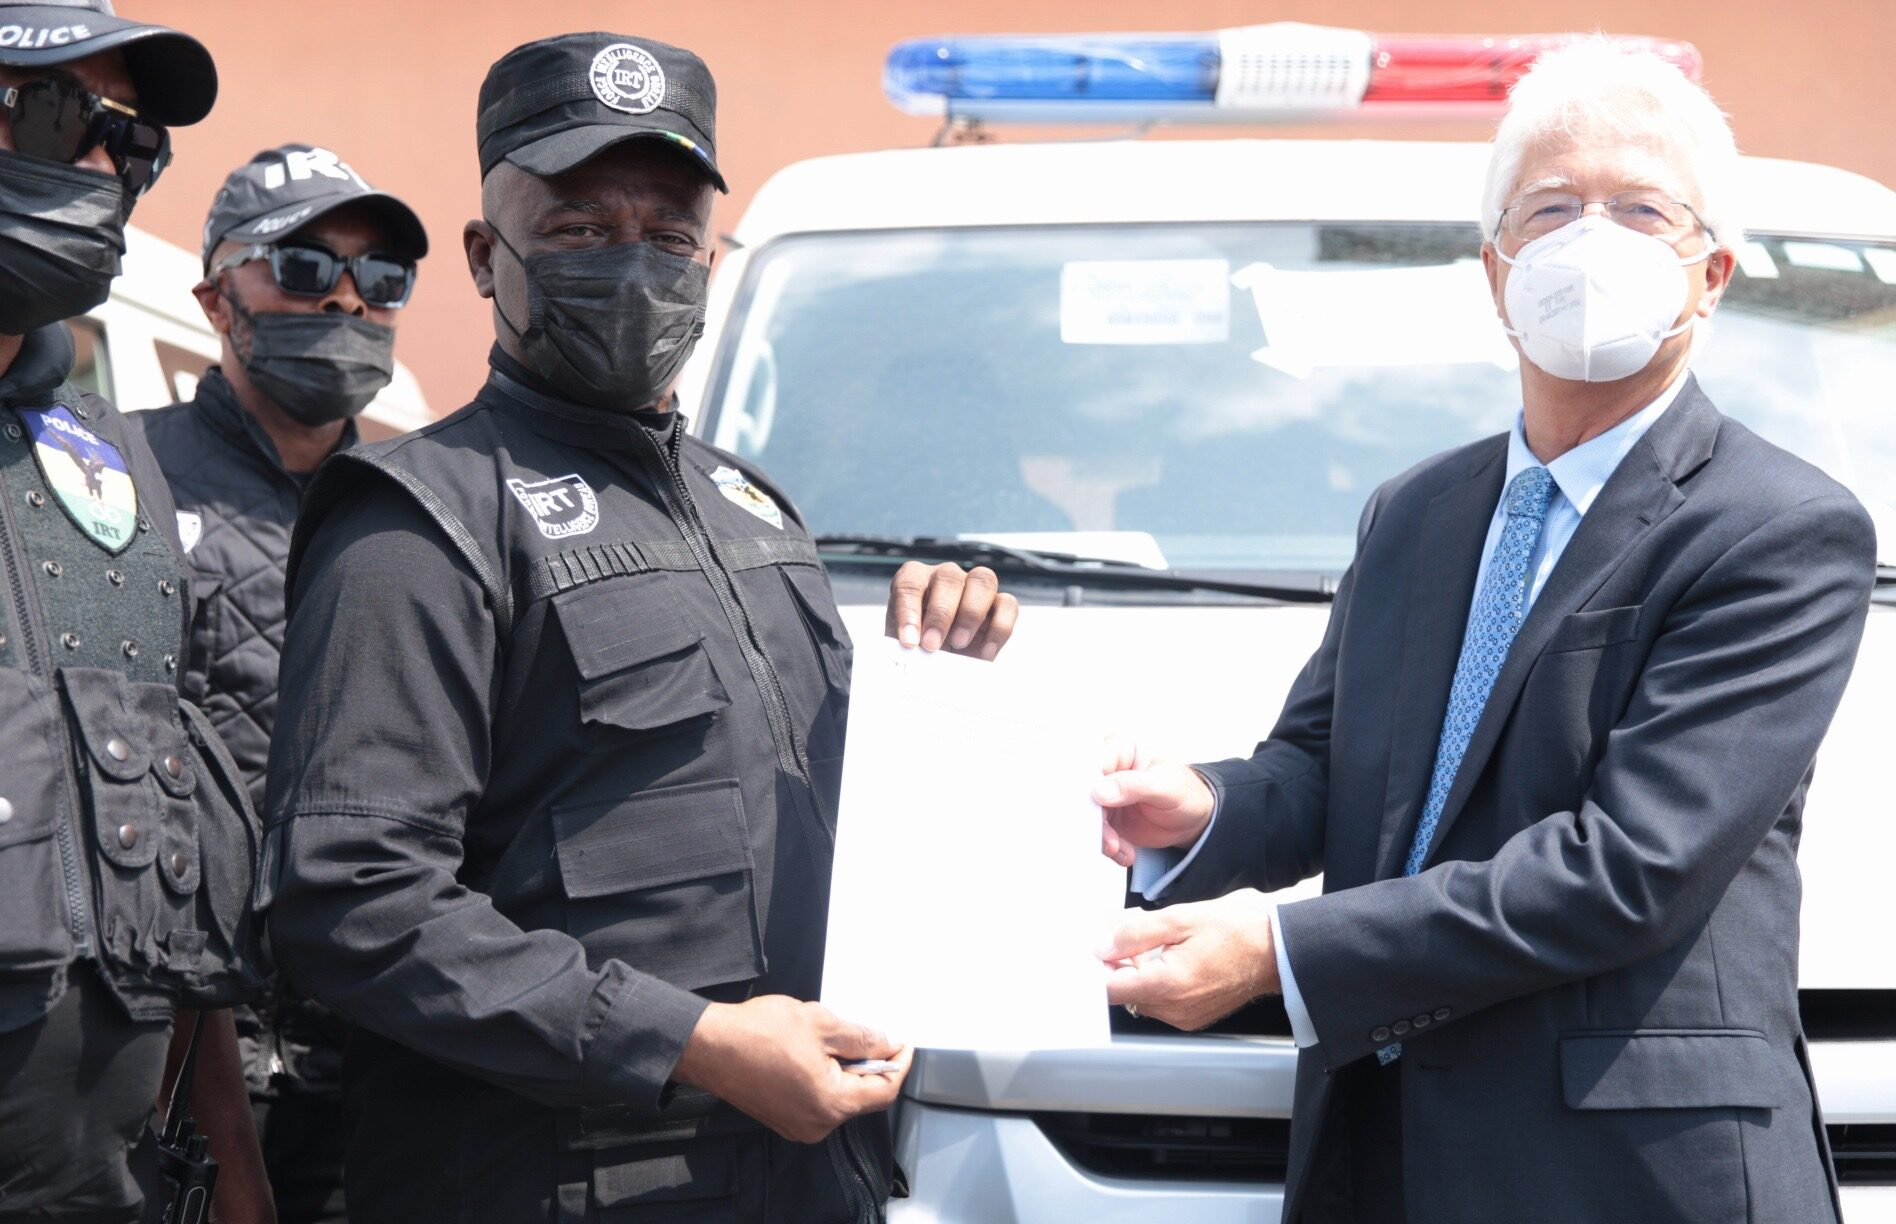 IRT Commander, DCP Tunji Disu while receiving the vehicles from the Consul General of the Federal Republic of Germany in Lagos, Dr. Bernd von Muenchow-Pohl at the event held in Lagos